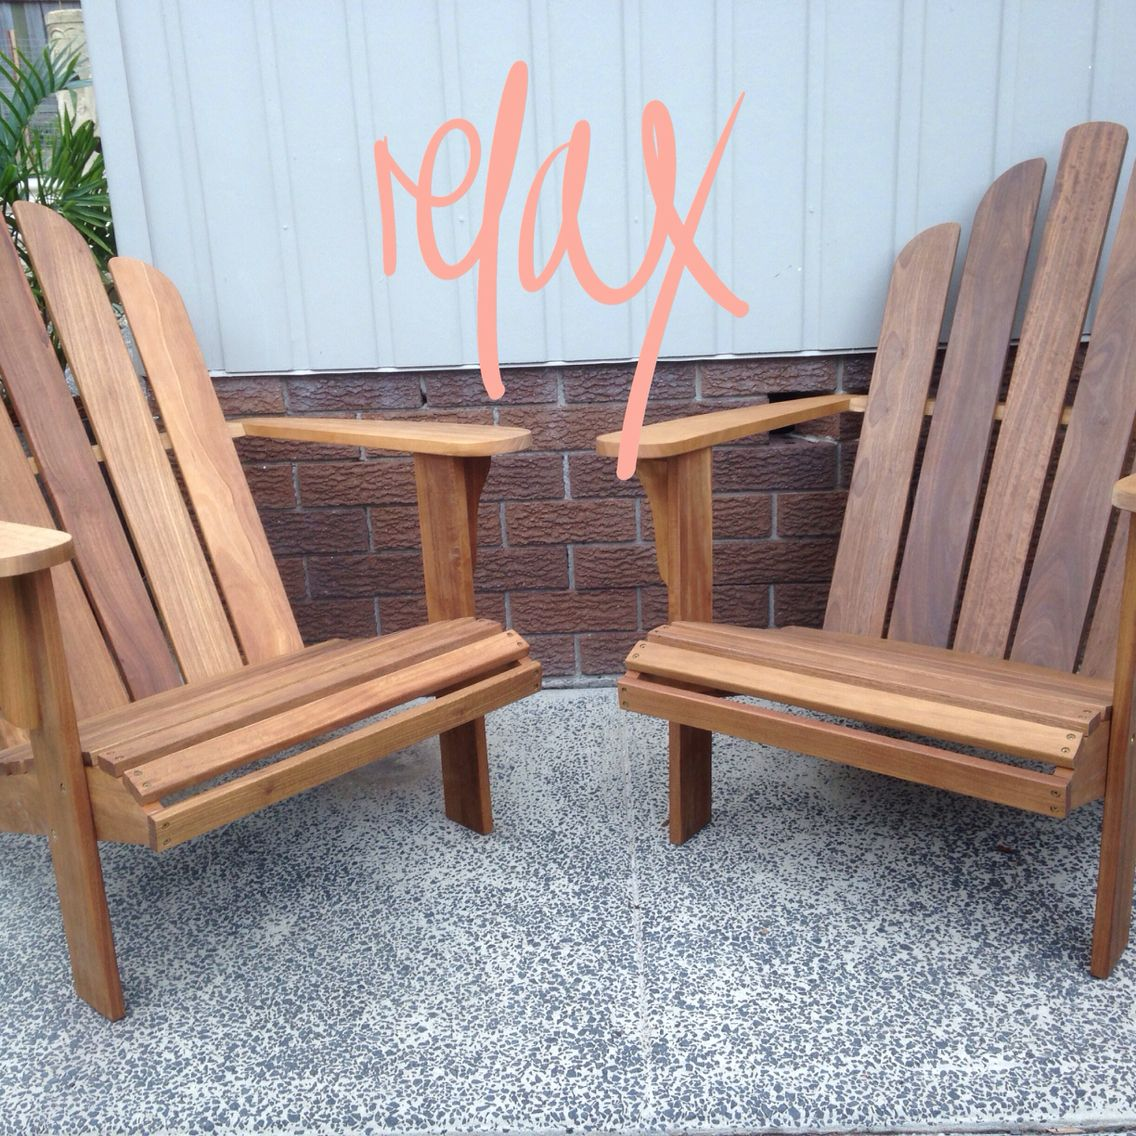 Cape Cod / Adirondack Chairs from Bunnings Warehouse. Just